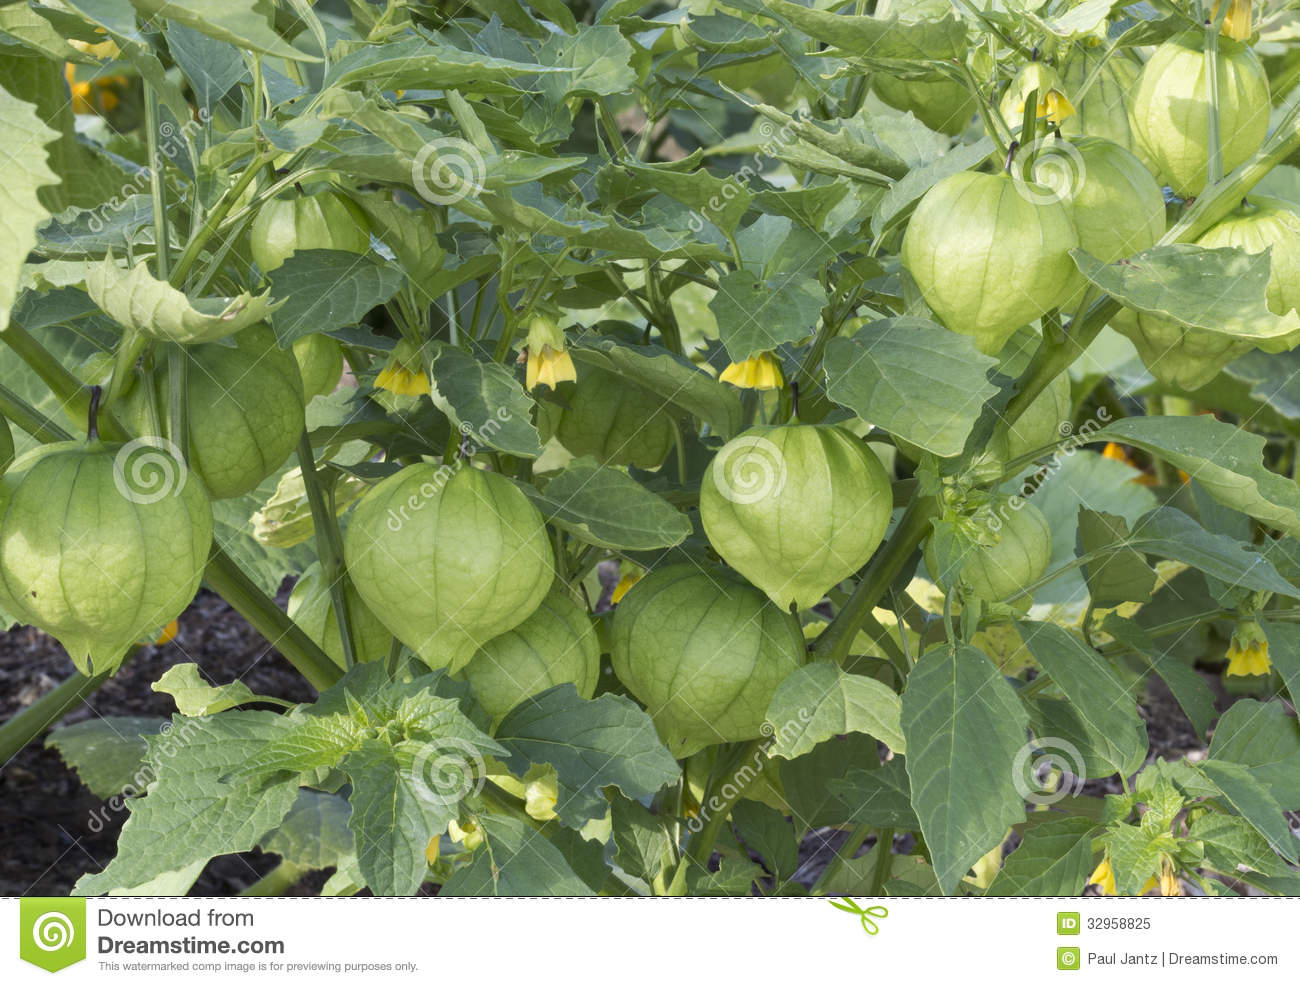 Chinese lantern plant royalty free stock photo image for Green plants for garden